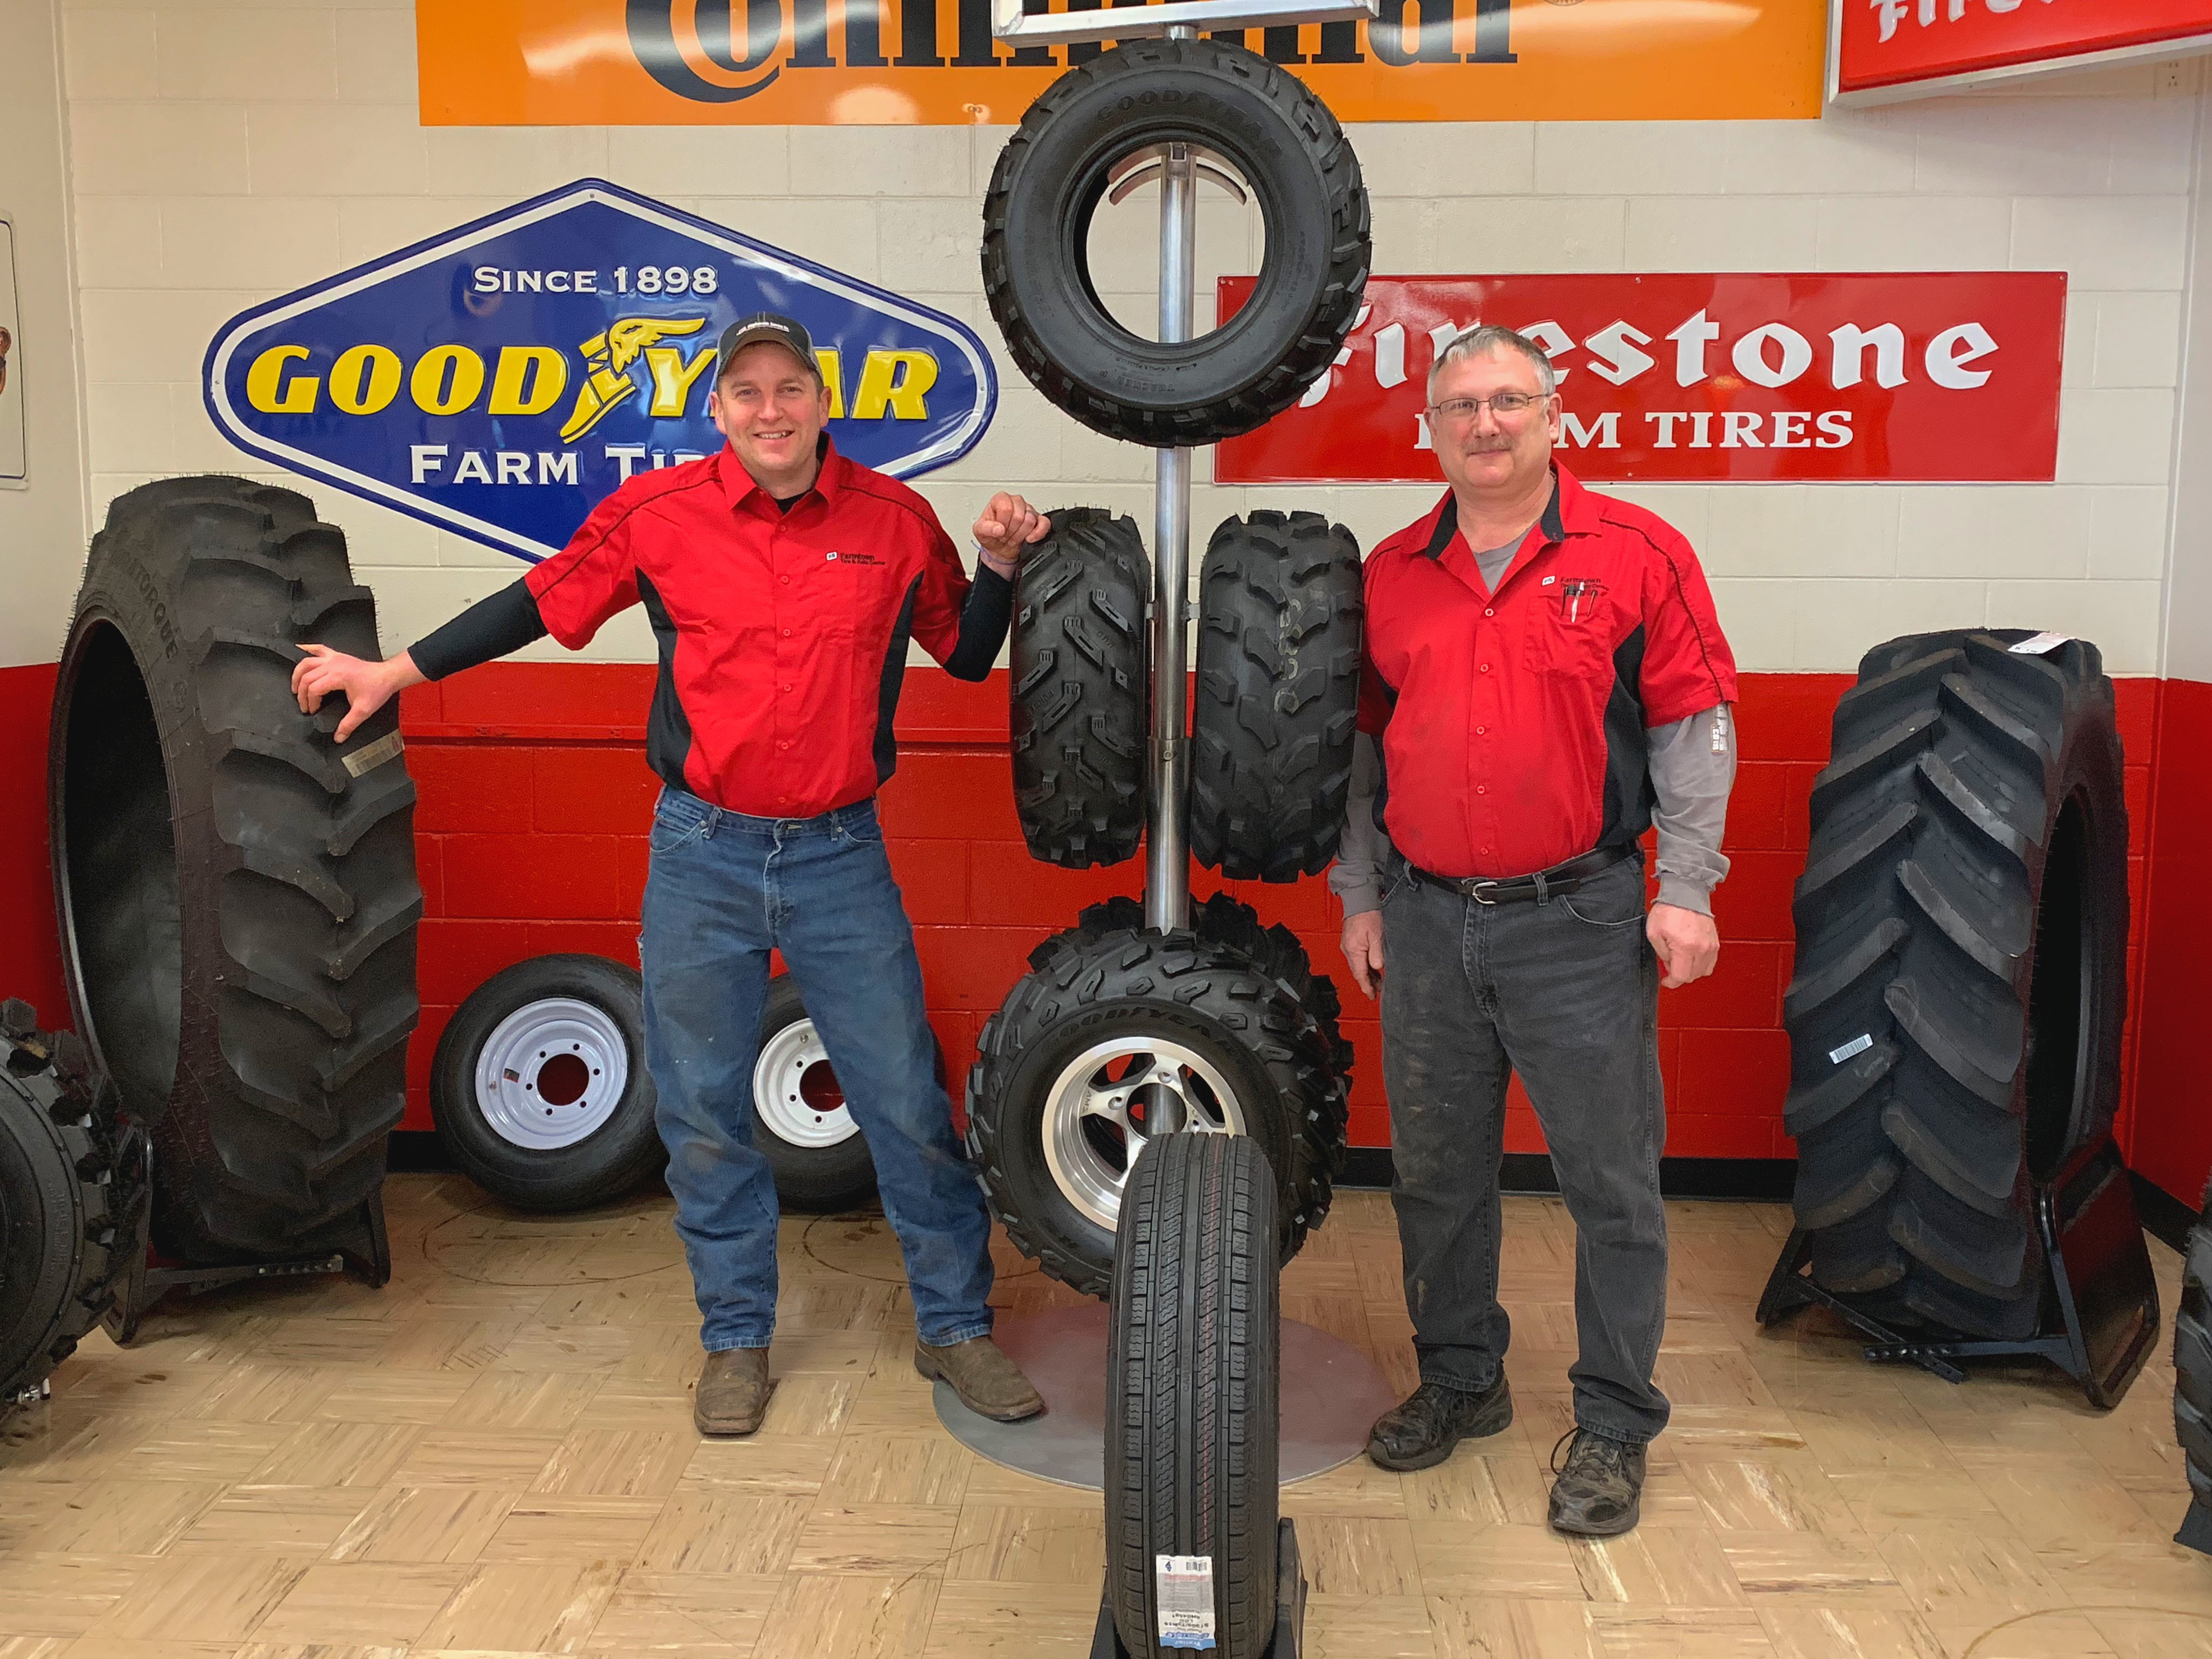 Bryan and Randy Tires